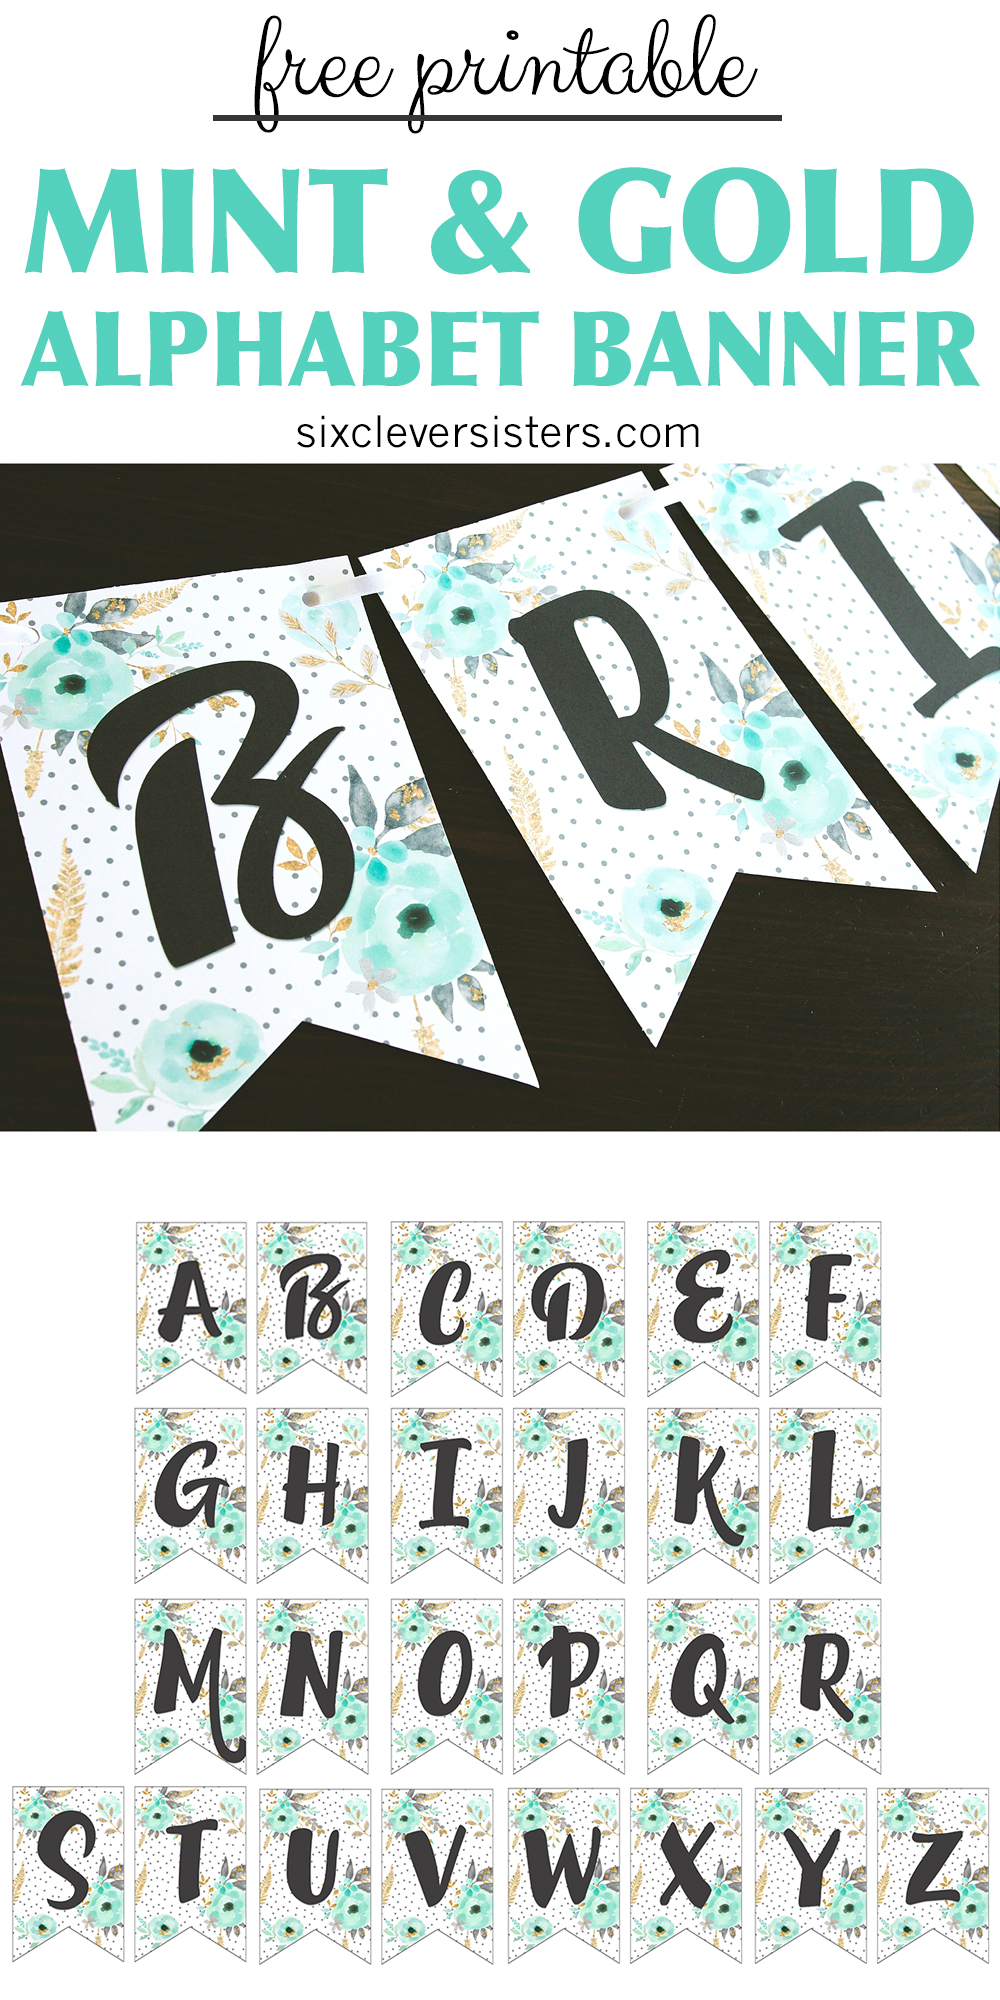 photograph about Free Printable Alphabet Letters for Banners called Absolutely free Printable Alphabet Banner MINT GOLD - 6 Smart Sisters